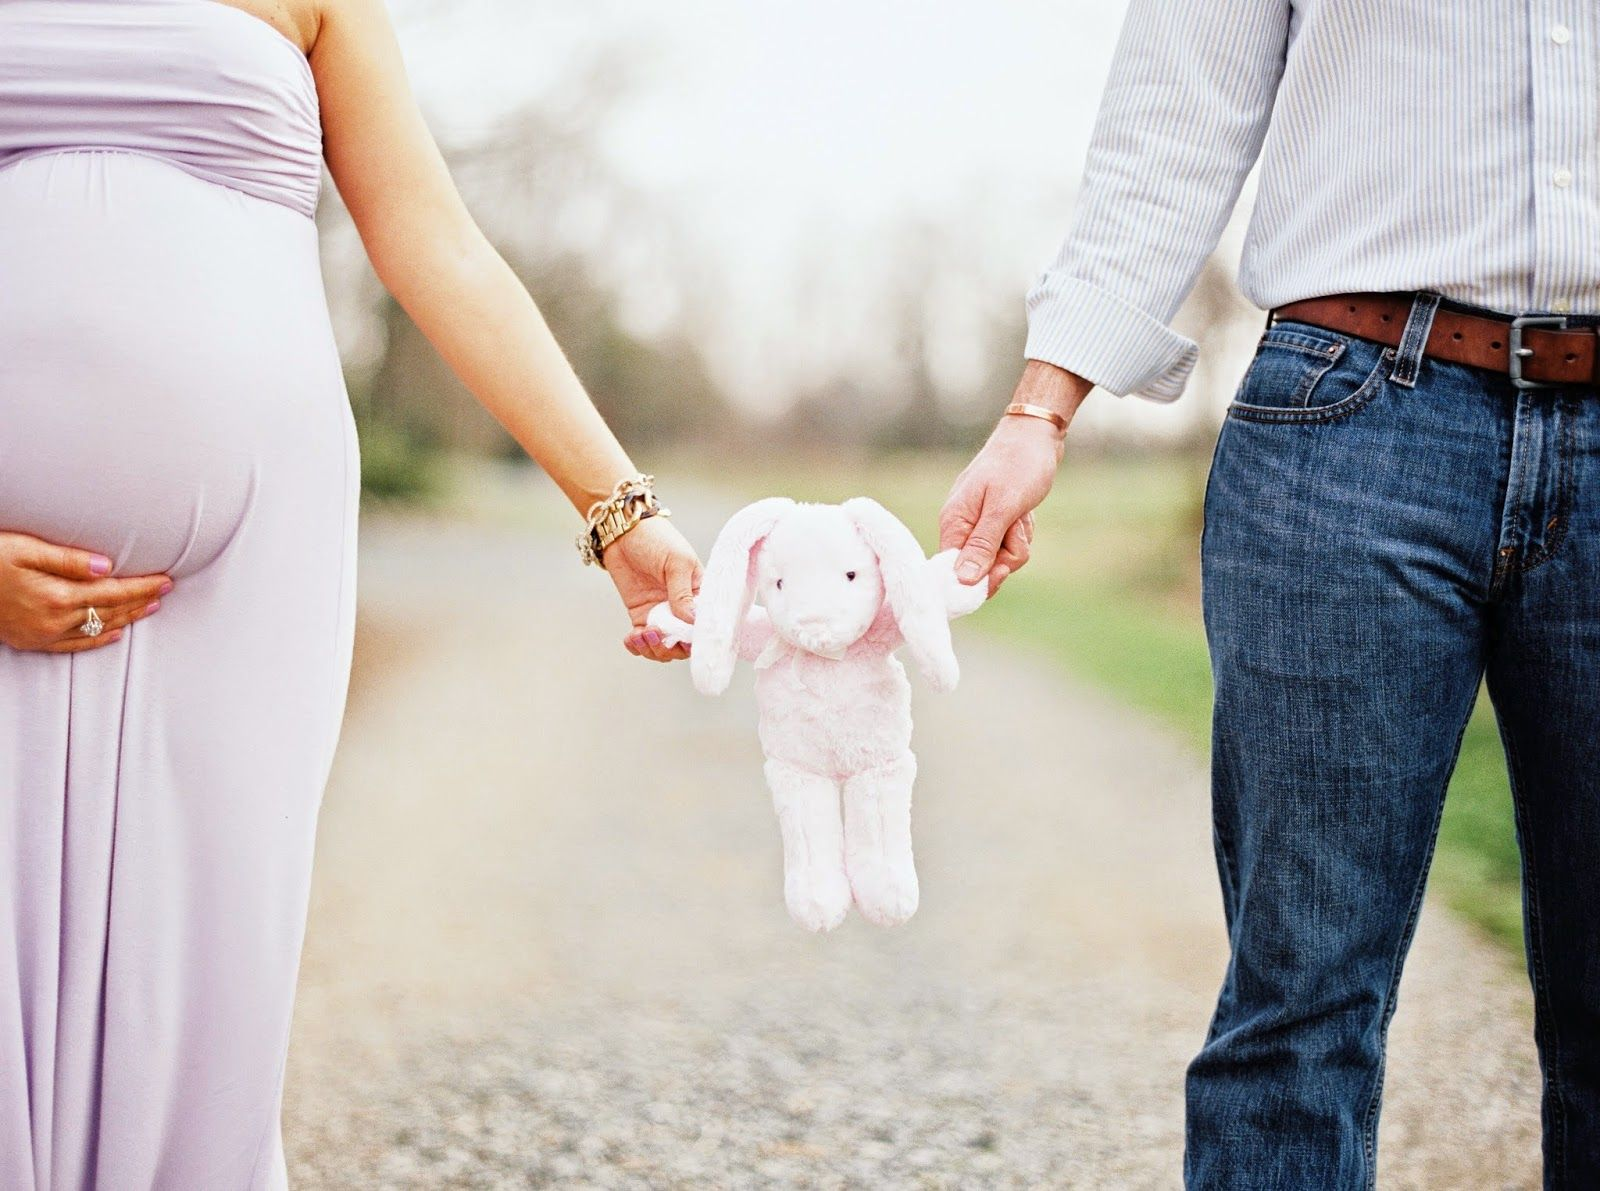 Cute idea using a toy you plan to use in monthlies with baby for your maternity shoot